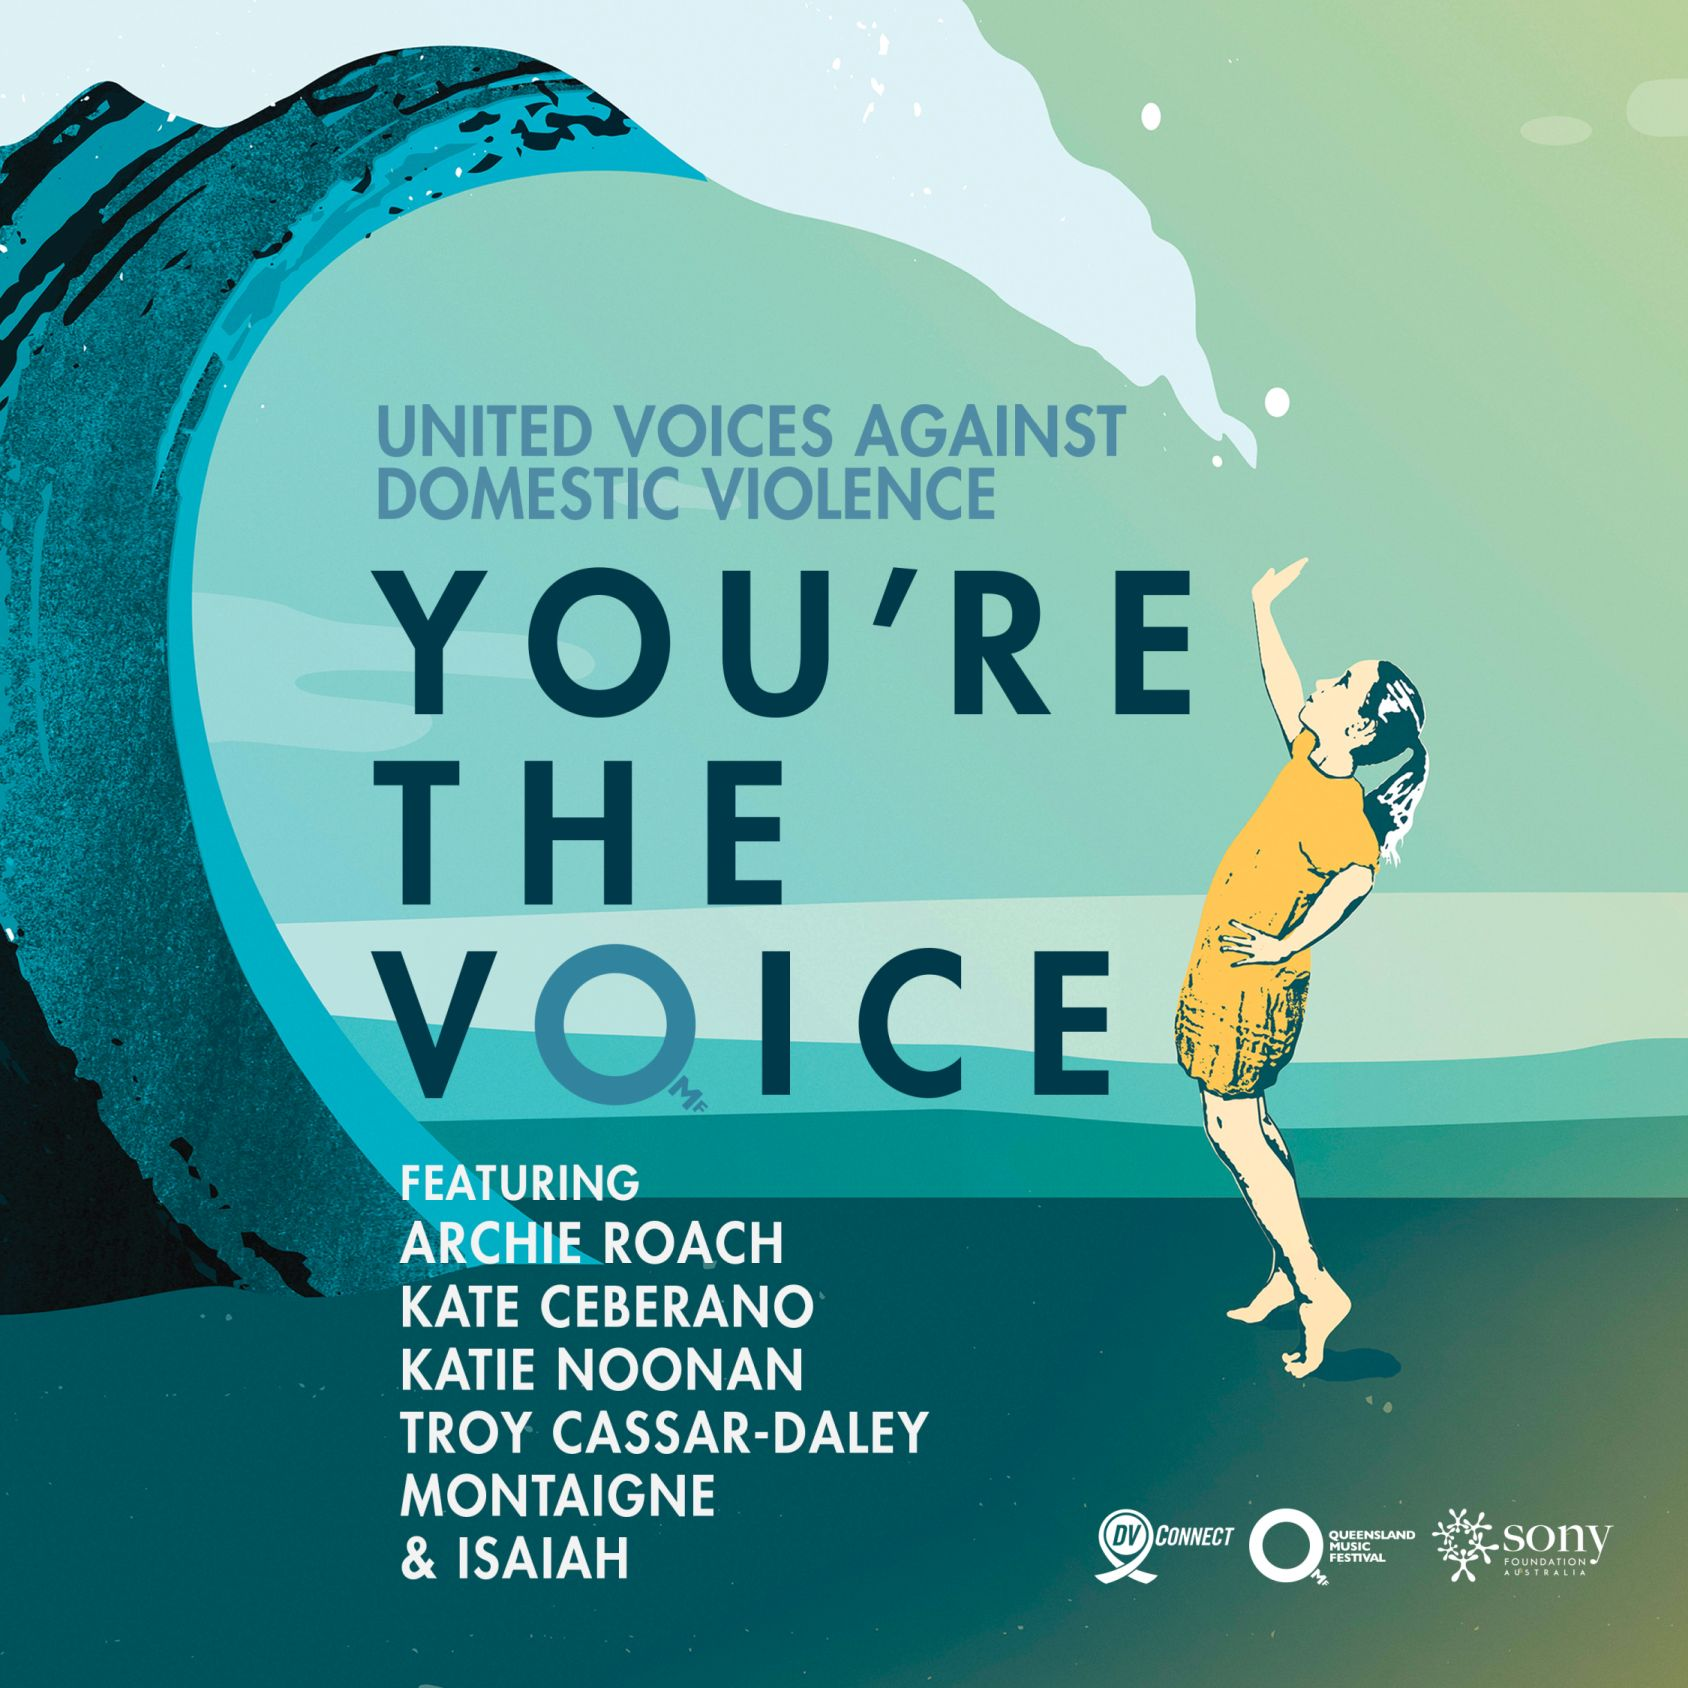 AUSTRALIAN MUSIC STARS UNITE TO SING OUT ON DOMESTIC & FAMILY VIOLENCE ON ICONIC TRACK 'YOU'RE THE VOICE' PROCEEDS TO SONY FOUNDATION & QLD BASED DV CONNECT